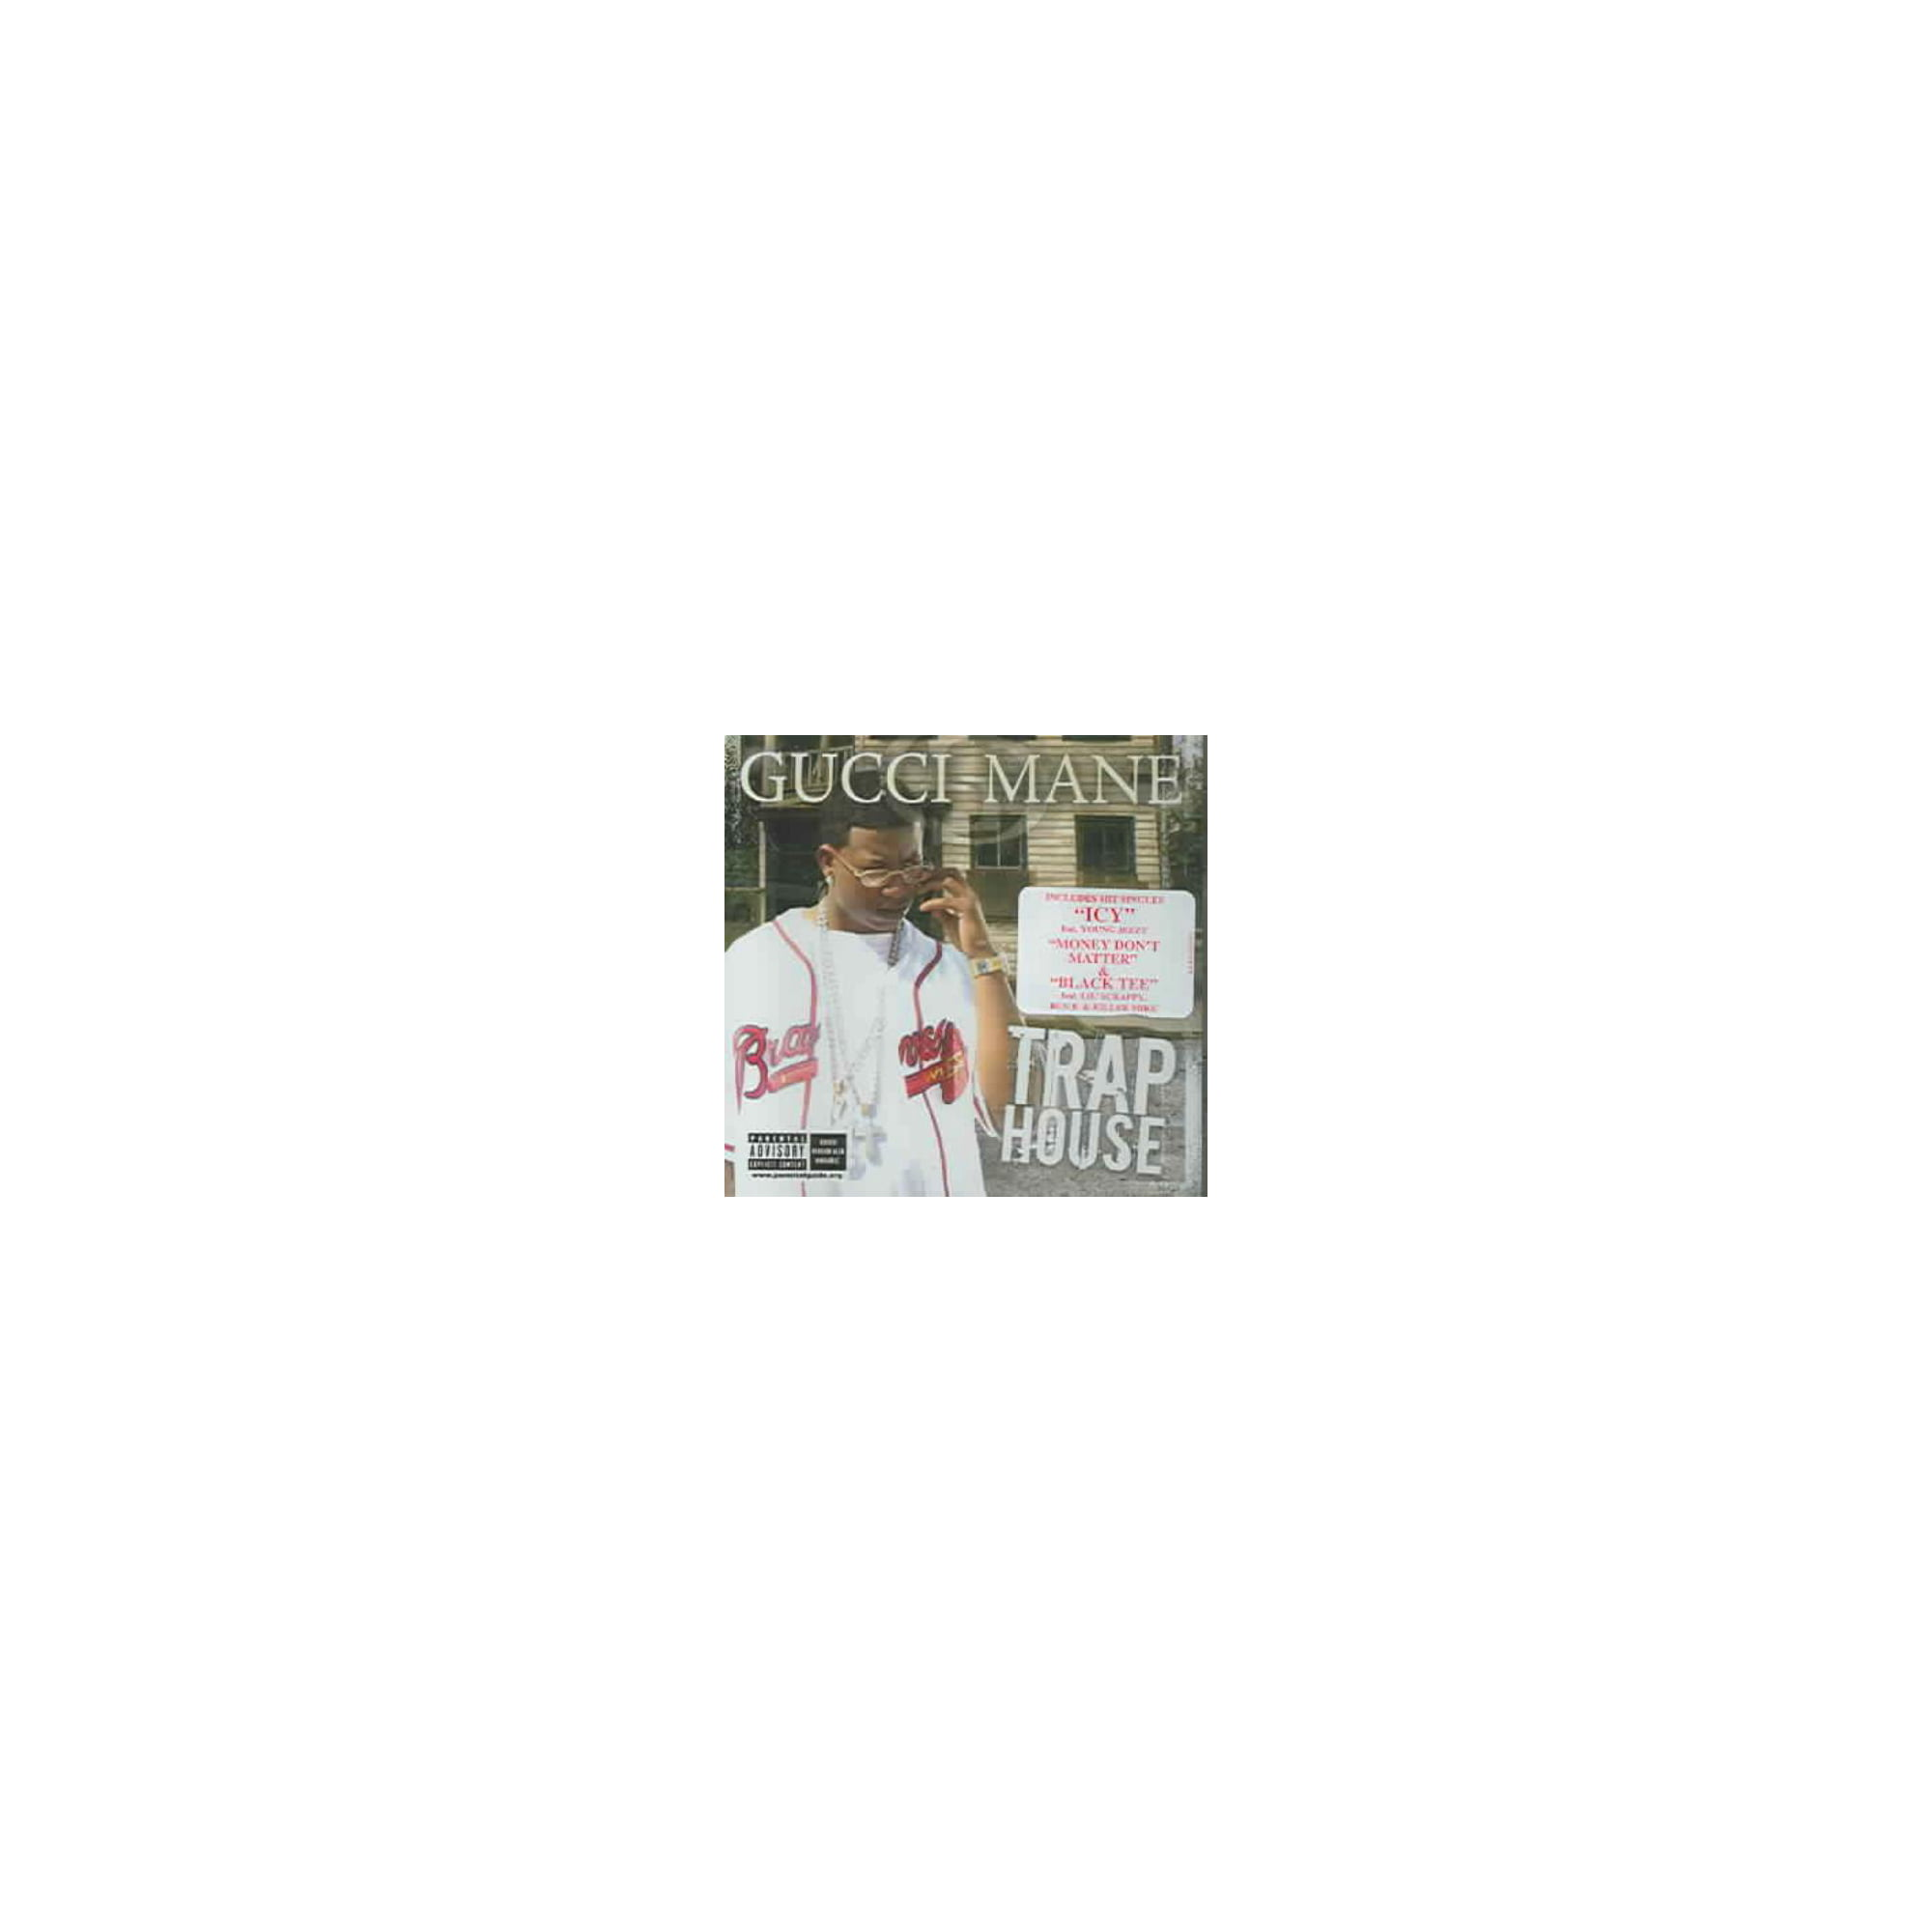 Gucci Mane Trap House [PA] CD